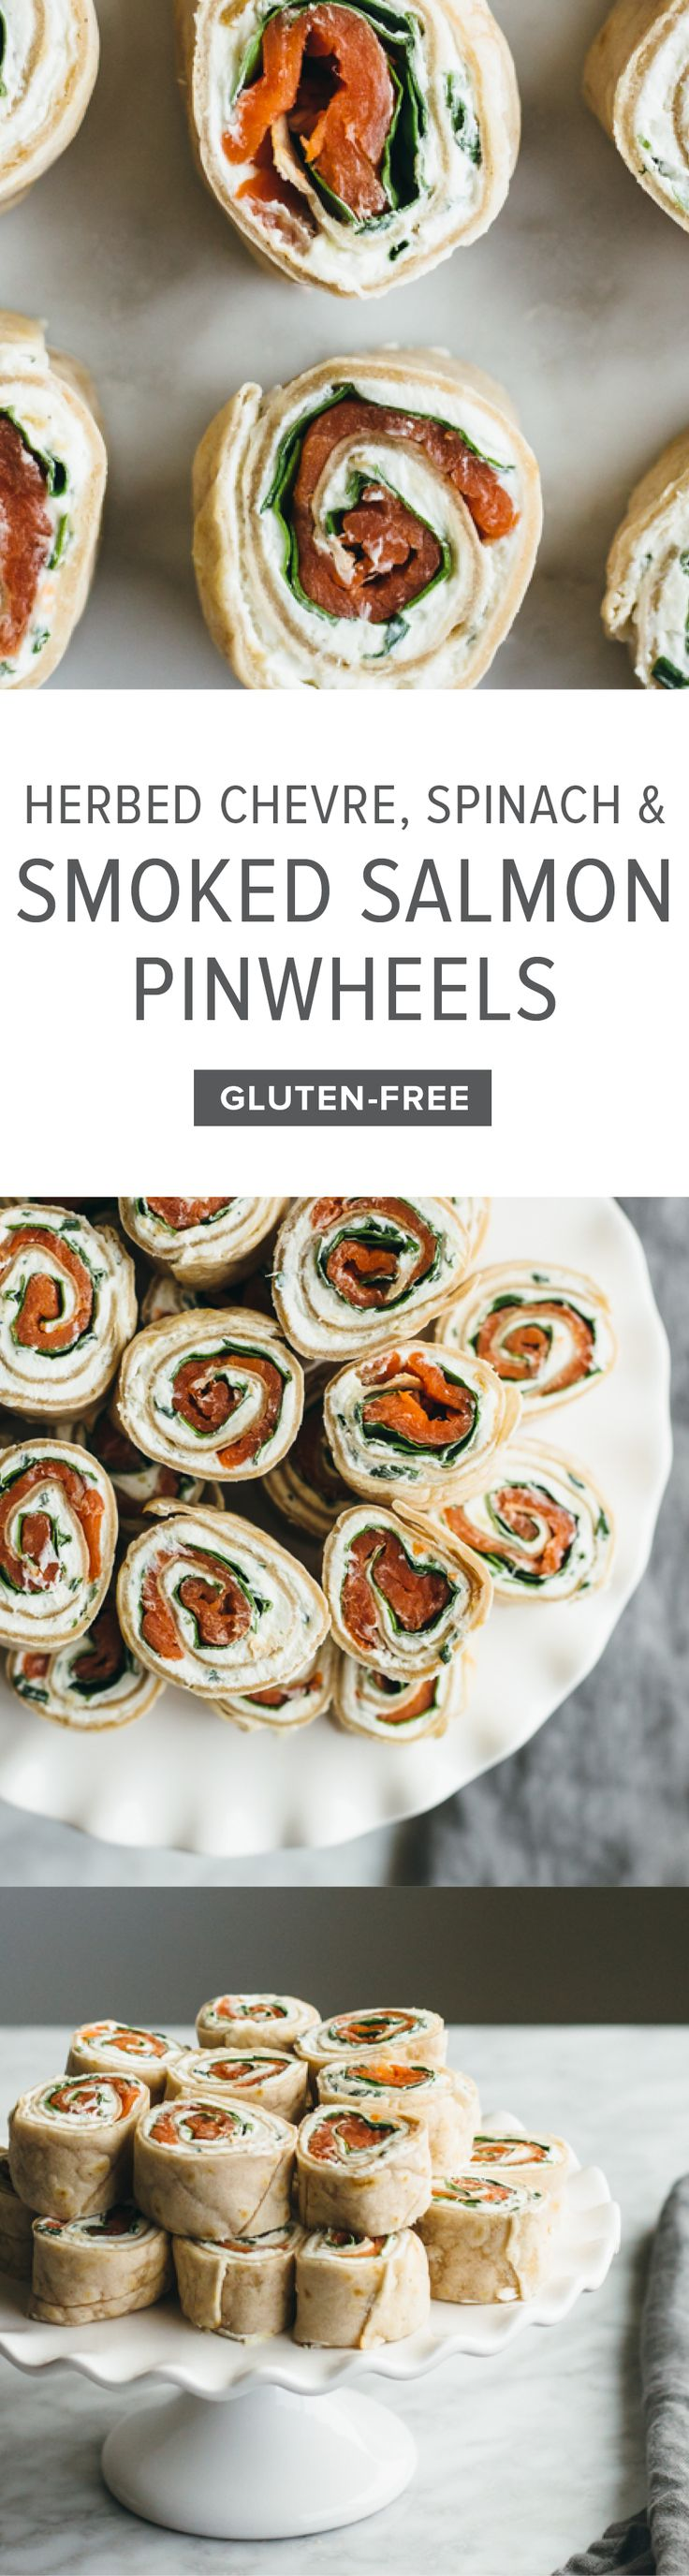 (gluten-free, paleo) Herbed Chevre, Spinach and Smoked Salmon Pinwheels. A tasty appetizer or snack made with cassava flour tortillas.